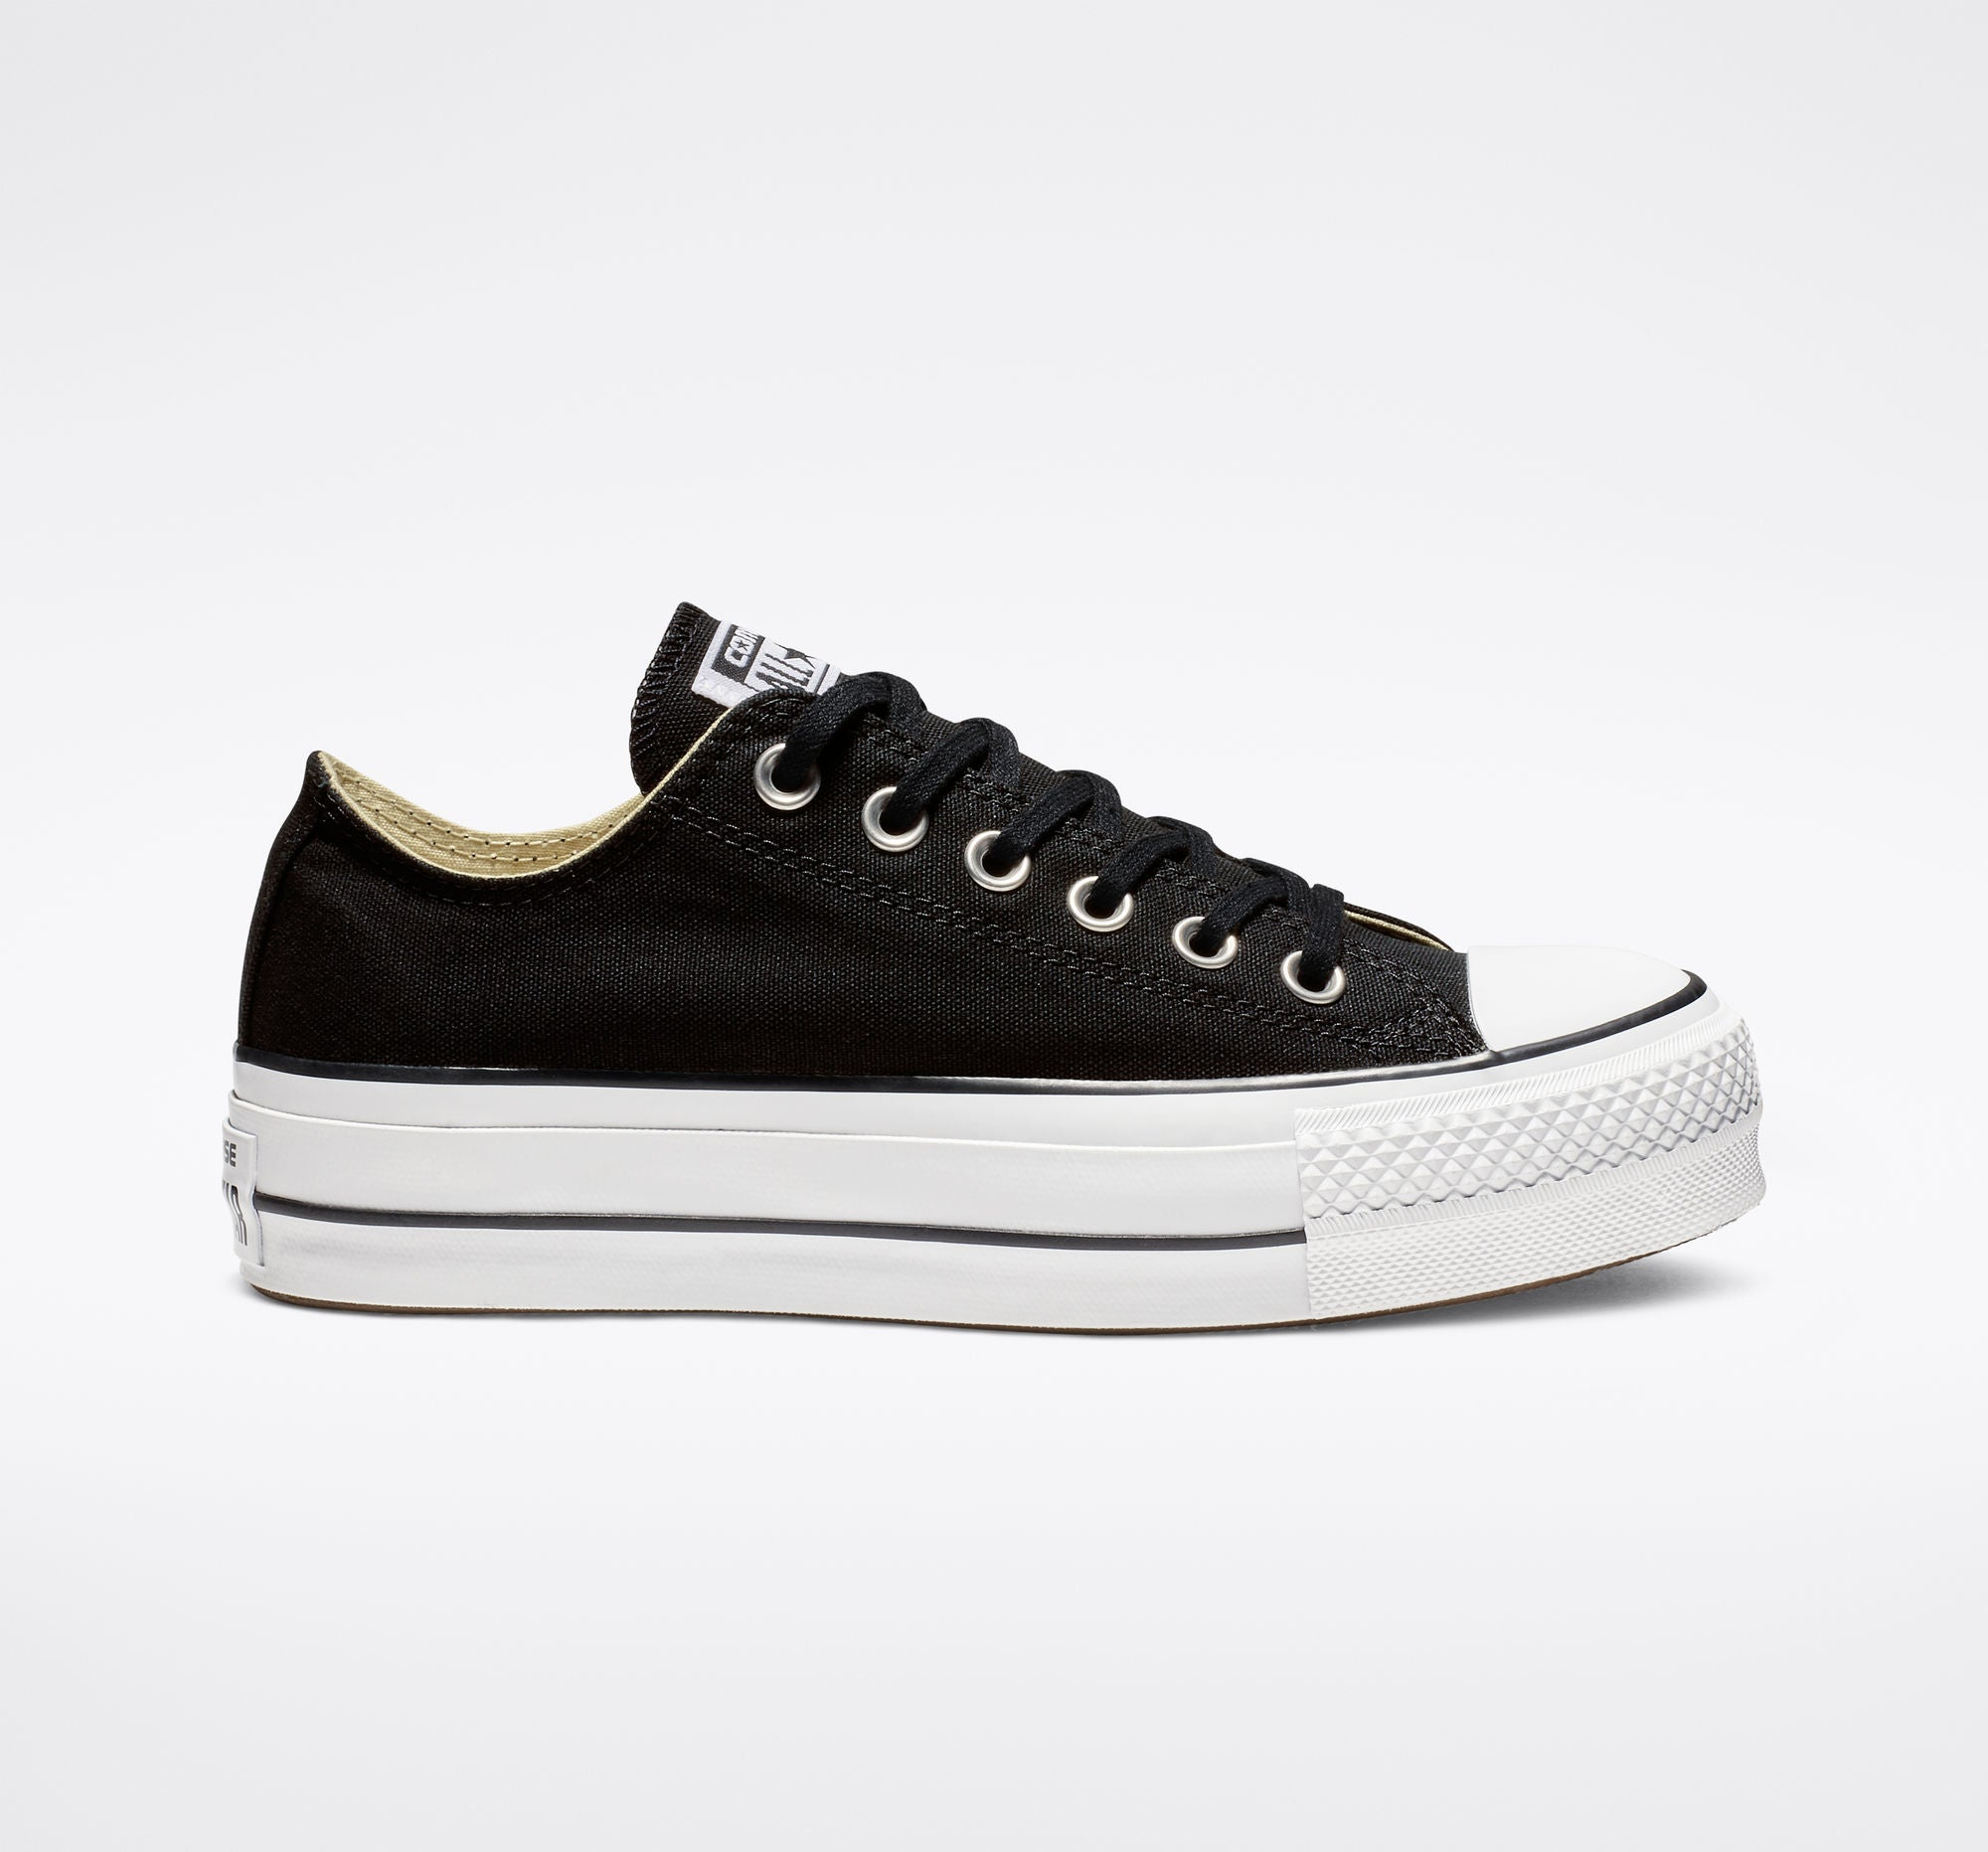 low priced e8bf4 c971f Women s Chuck Taylor All Star Platform Low Top - Black White